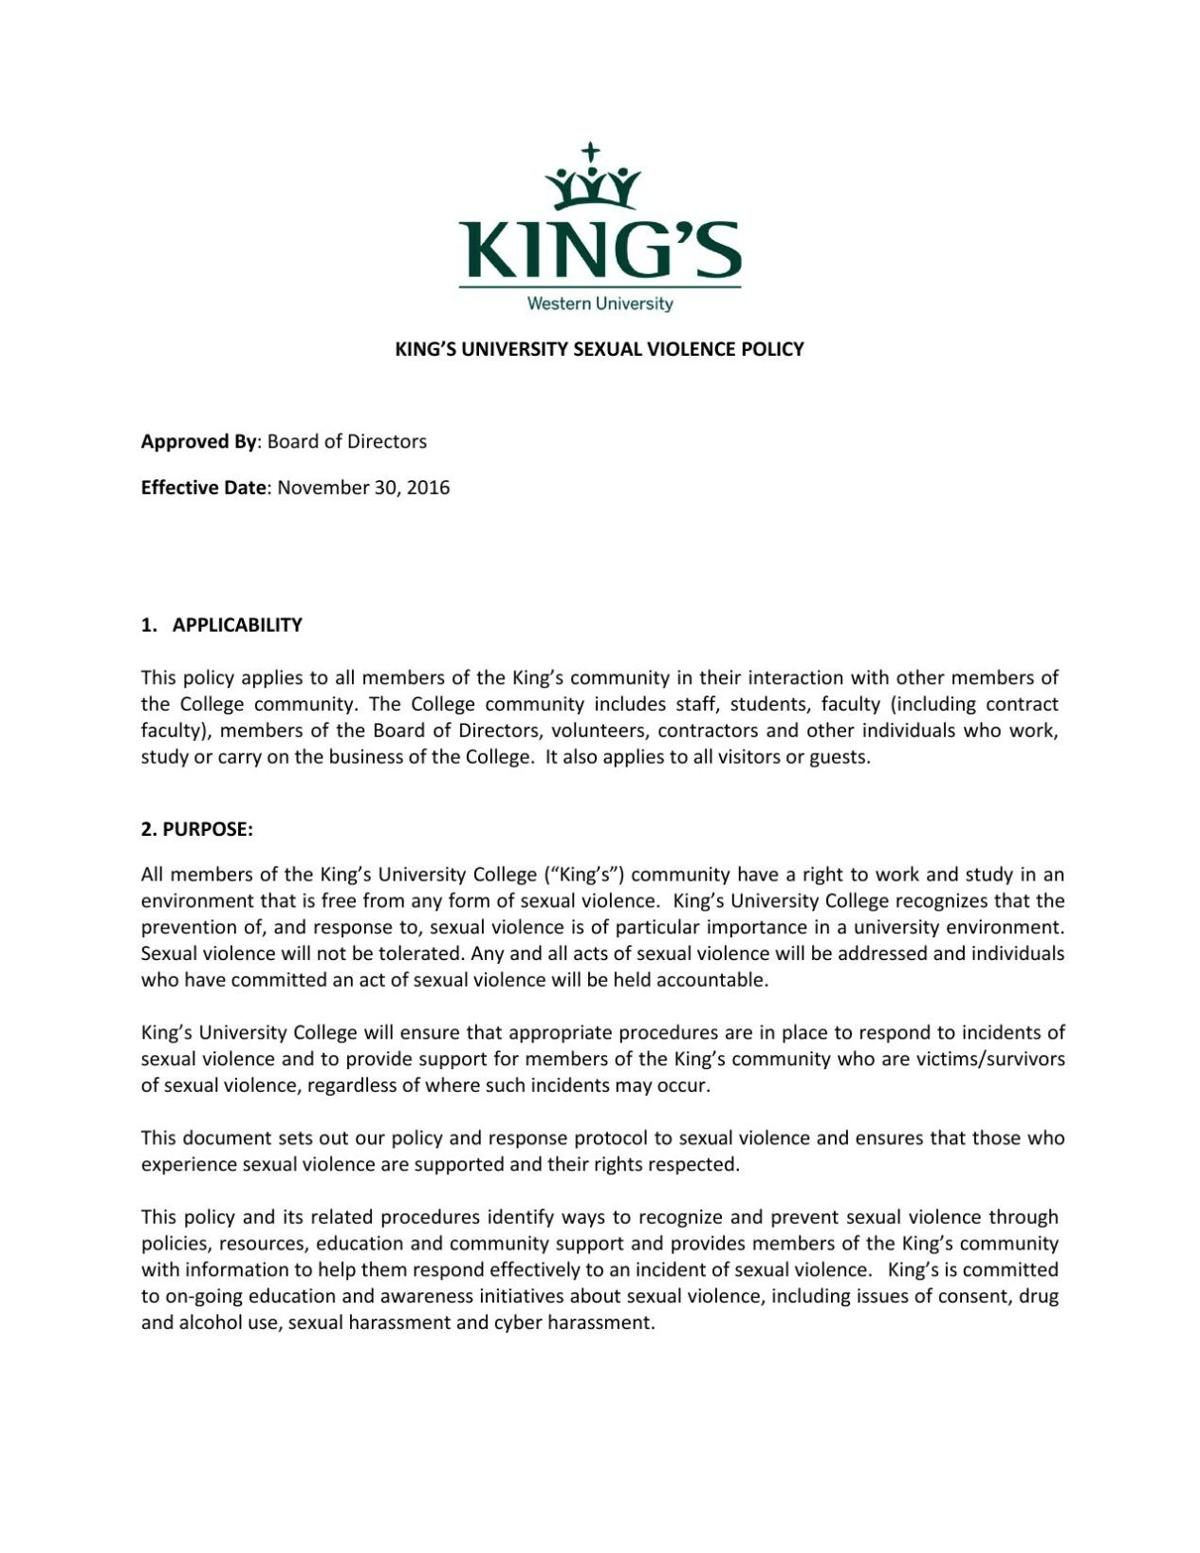 King's Sexual Violence Policy